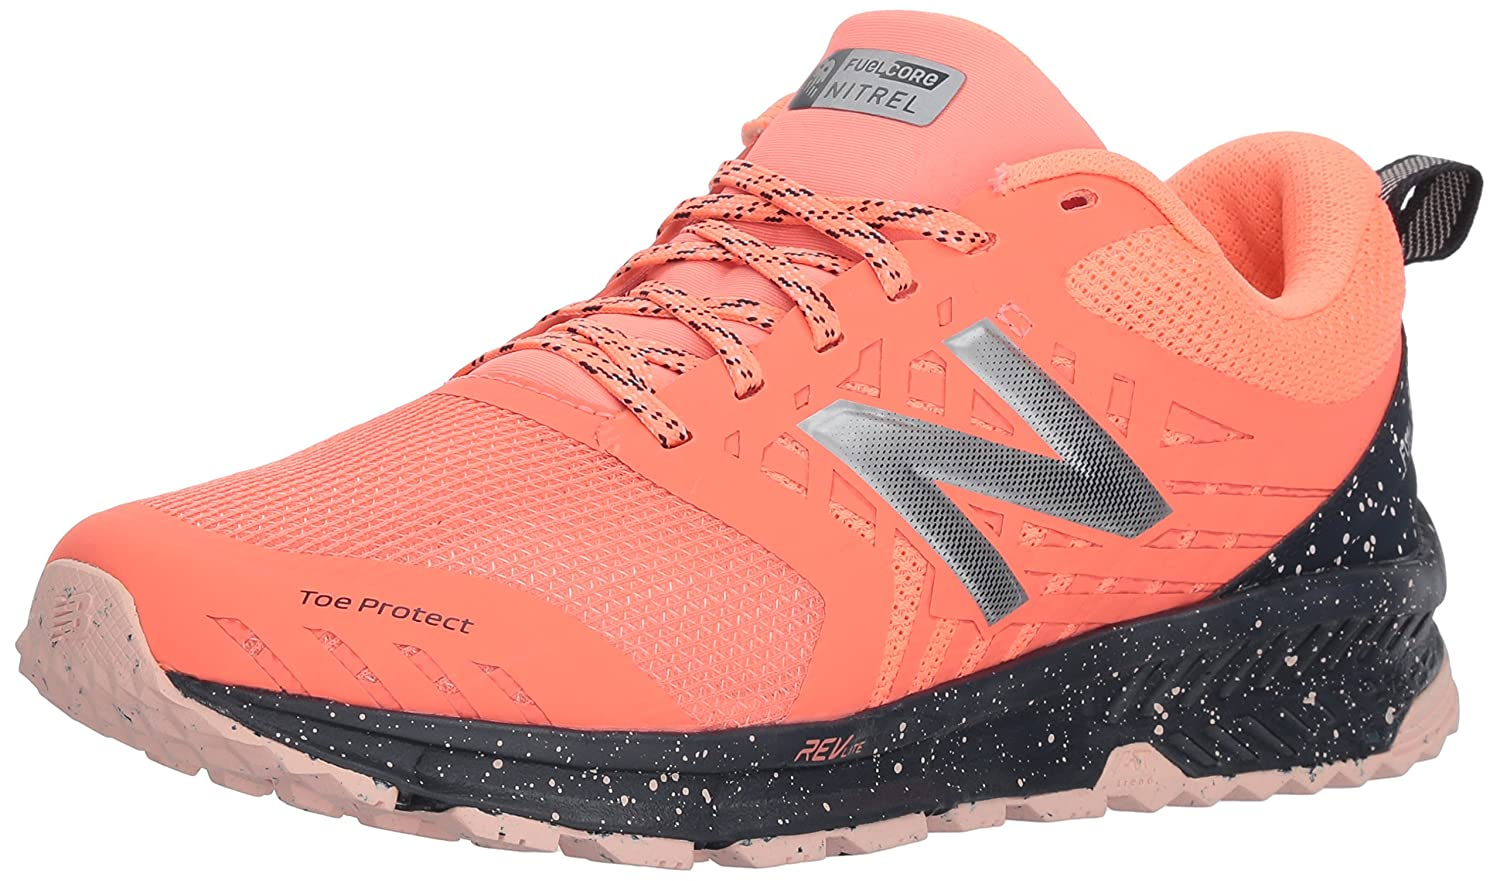 New Balance Women's Nitrel v1 FuelCore Trail Running Shoe B0751RBN3H 7.5 D US|Fiji